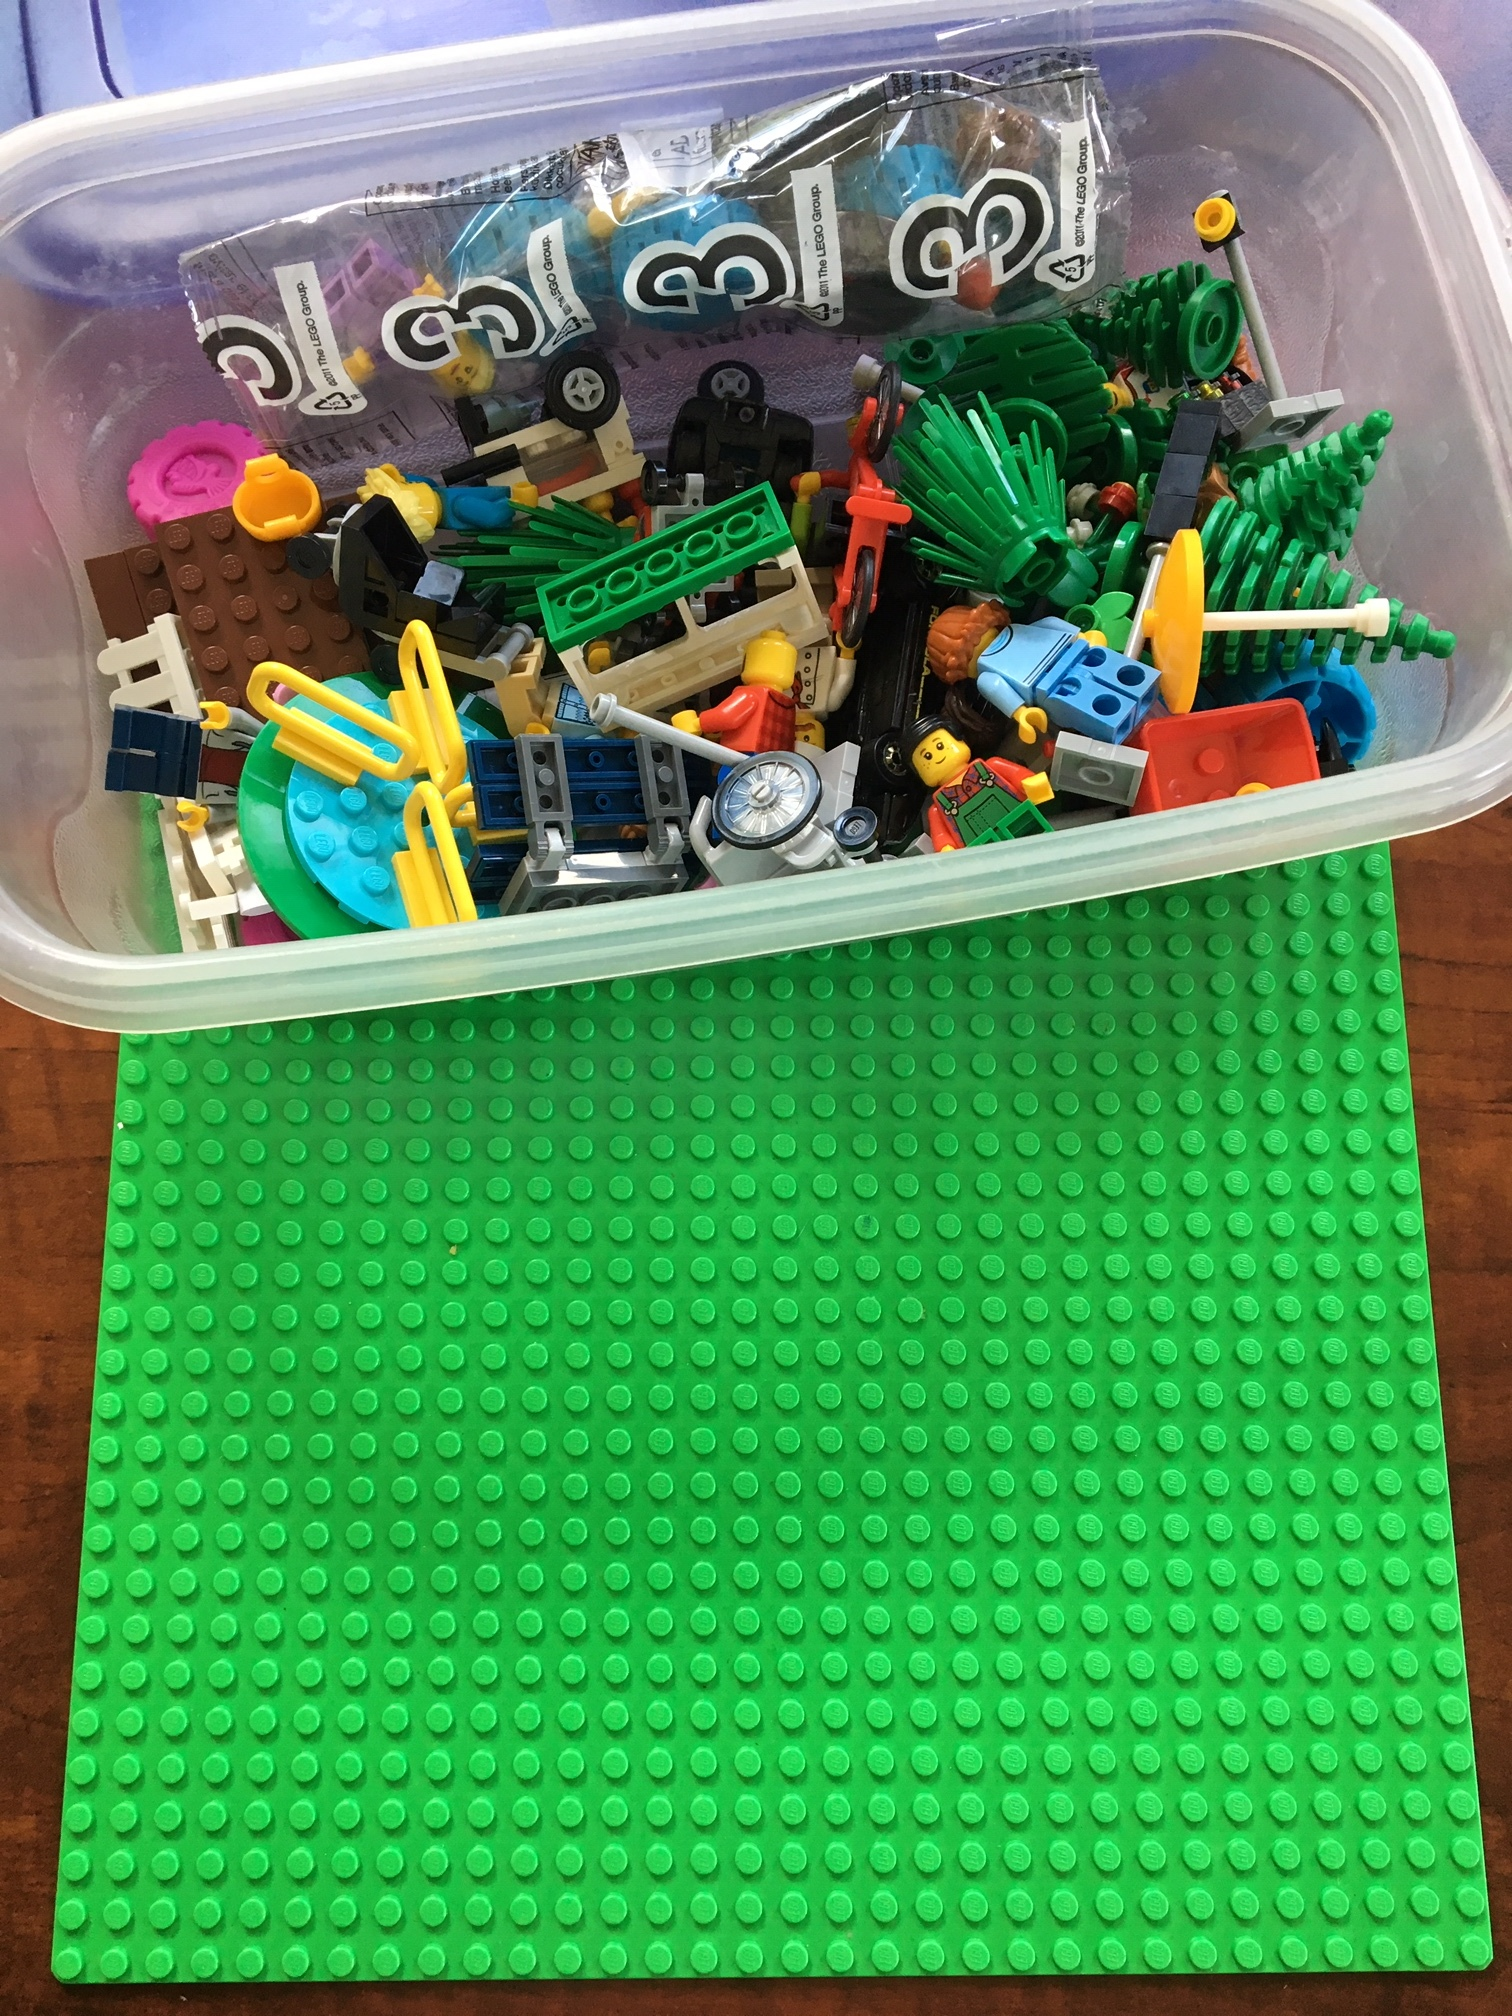 Grounded - Lego™ Pieces